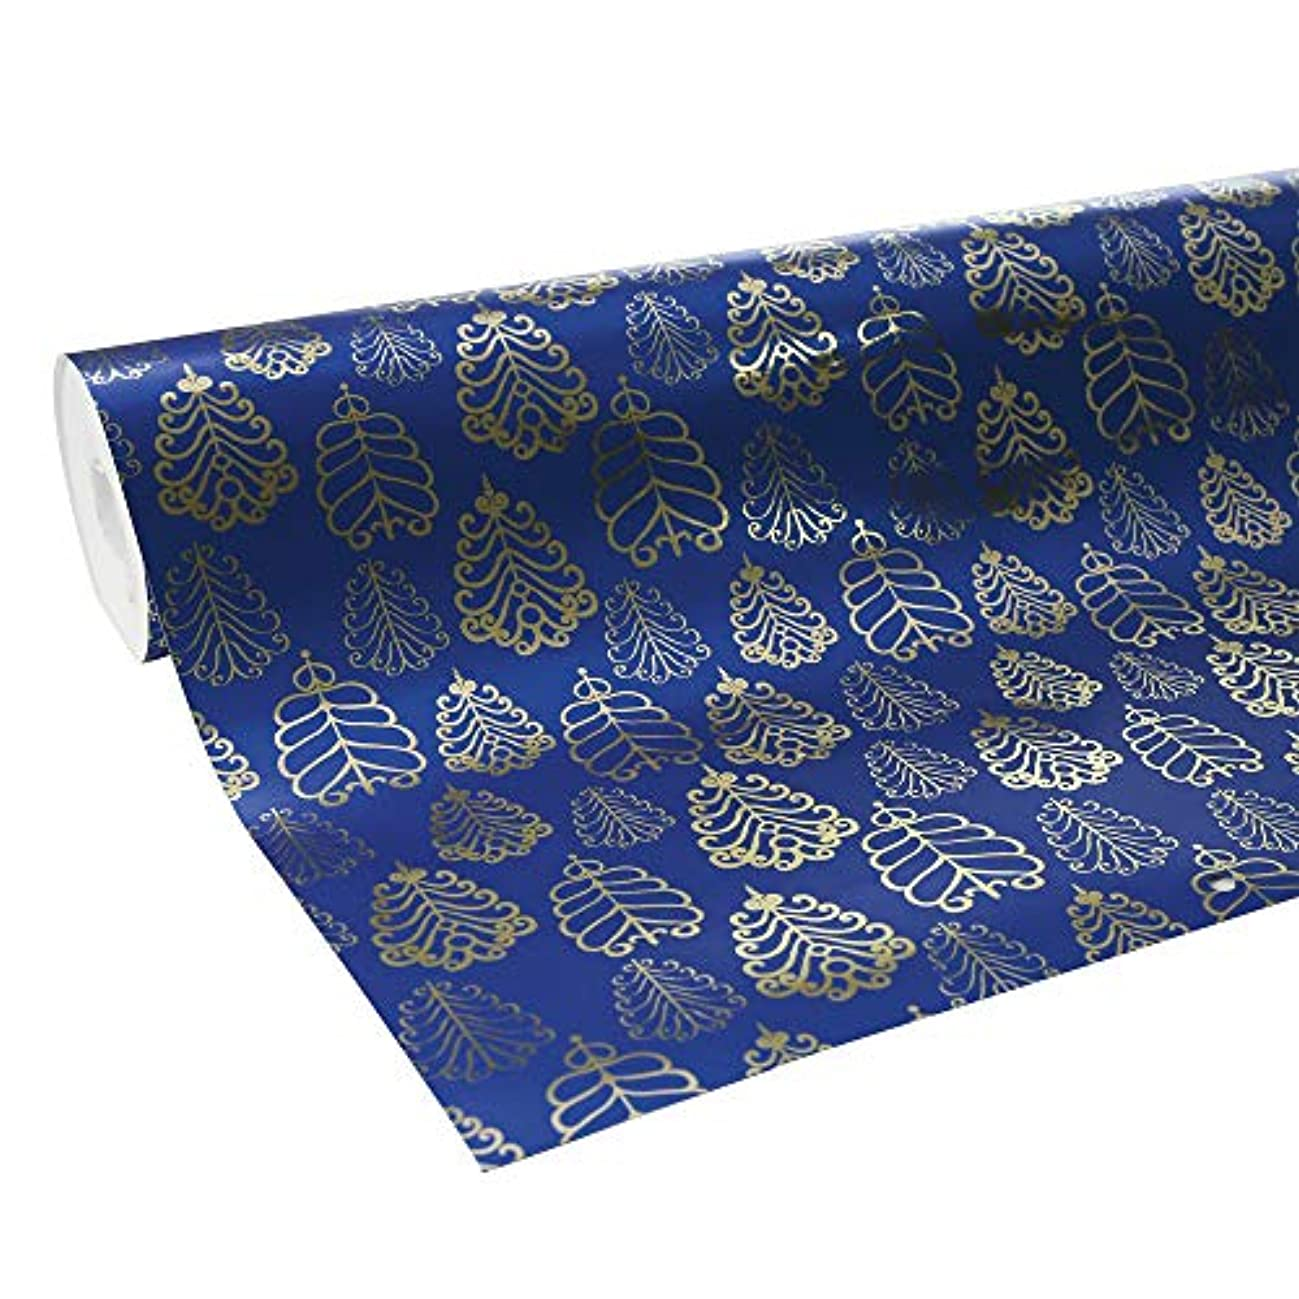 Clairefontaine 50 m x 0.70 m Premium Long Roll Wrapping Paper, Blue and Gold Flowers